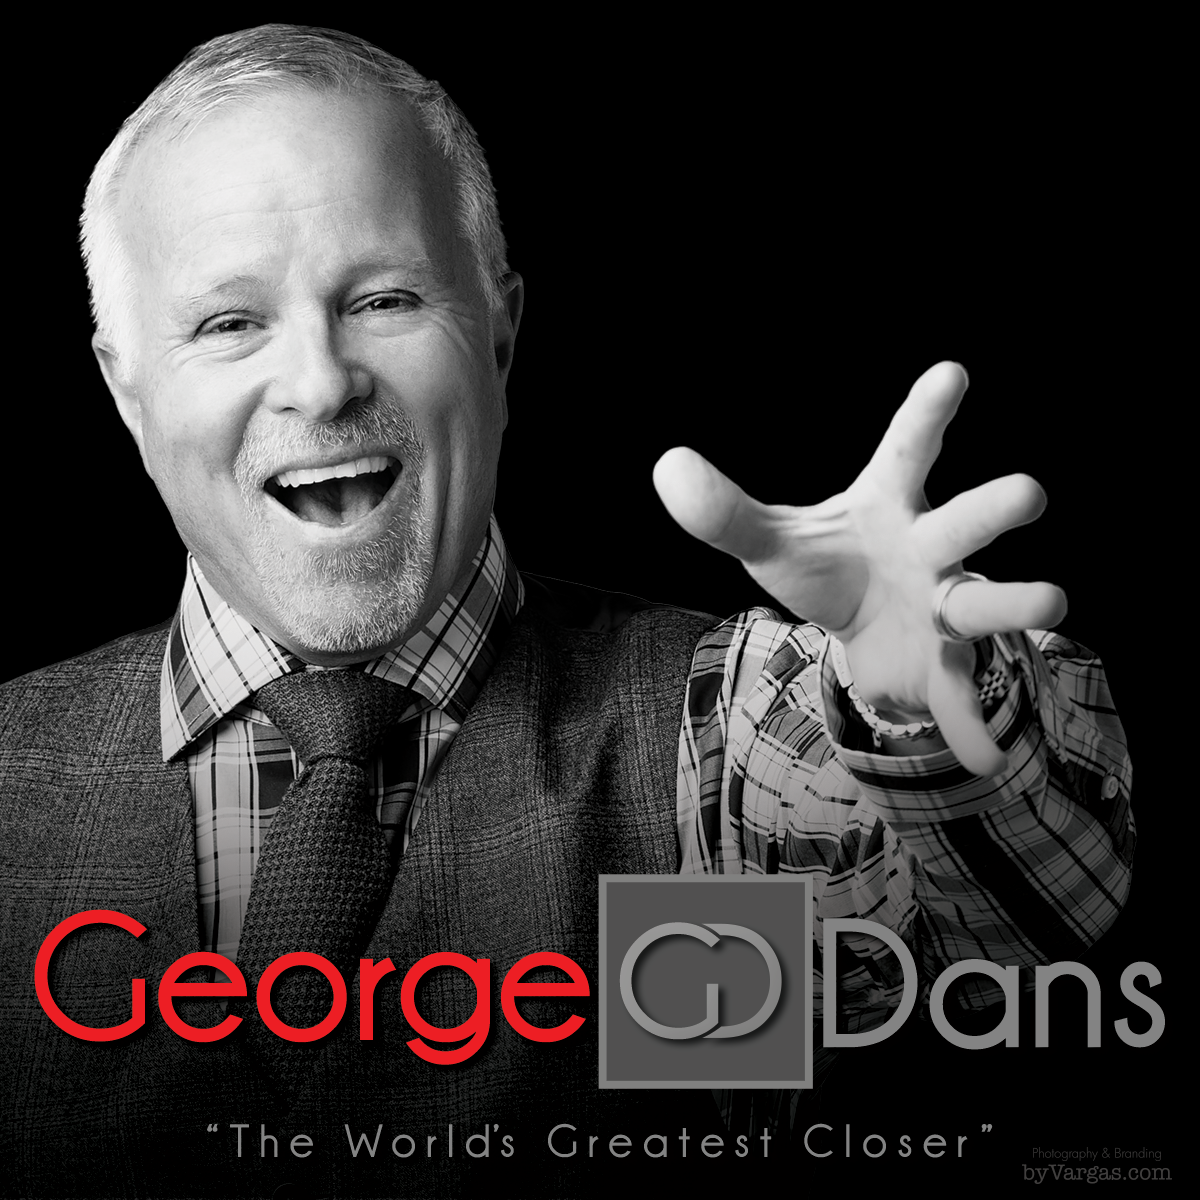 George-Dans-Worlds-Greatest-Closer-Vargas.png